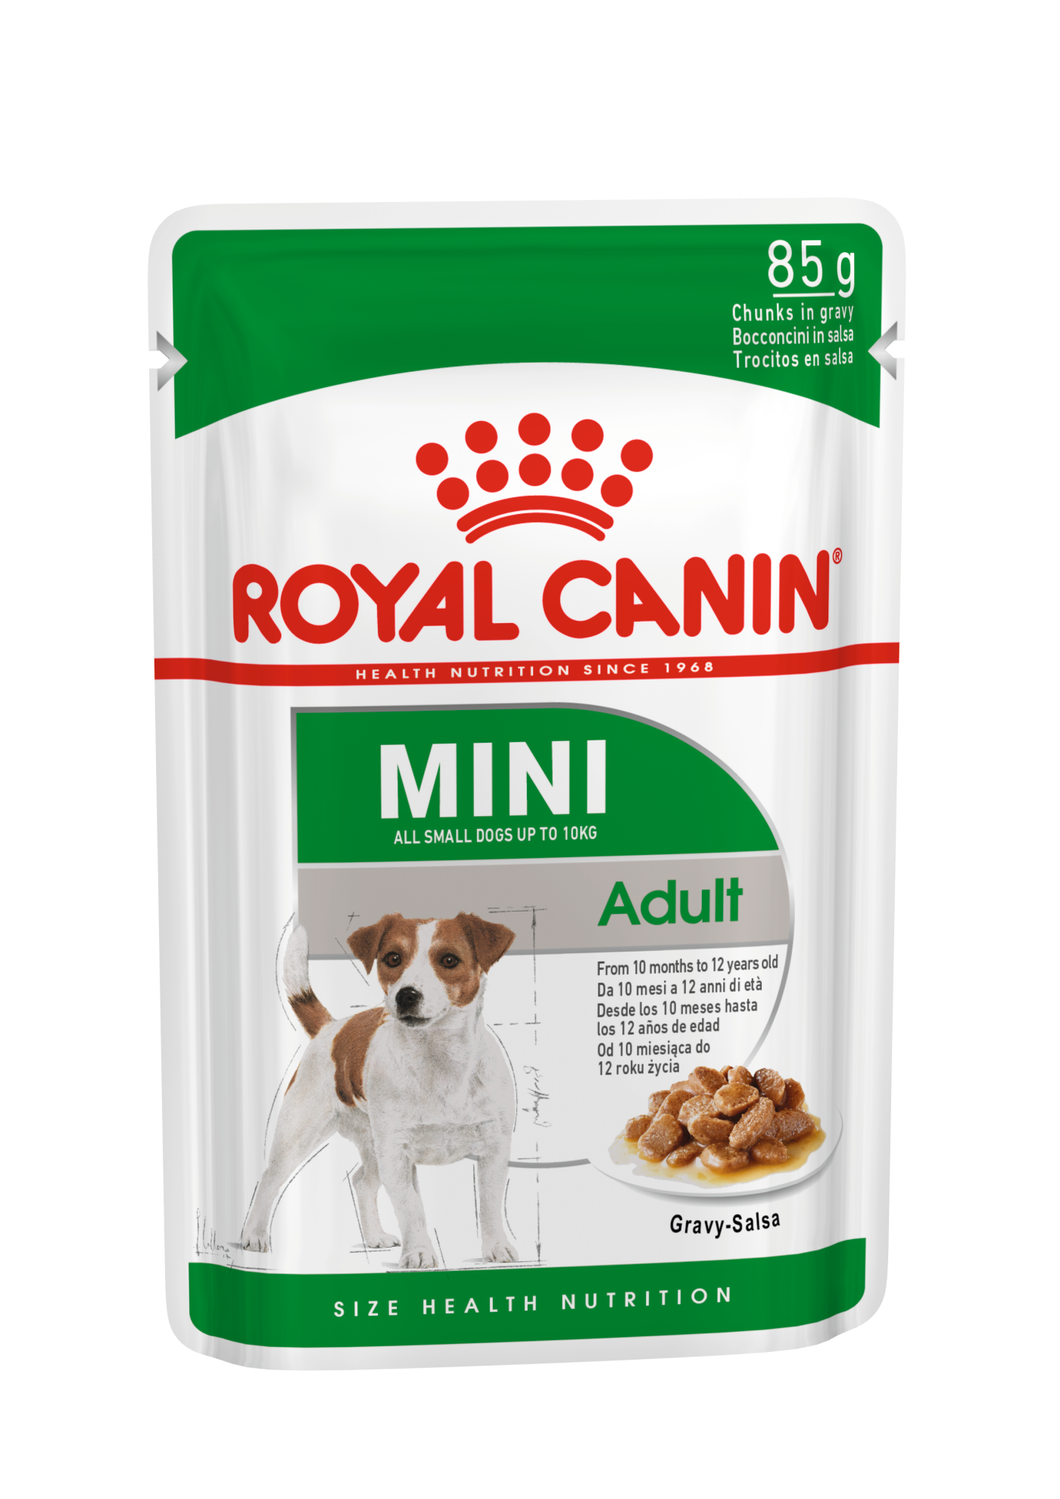 ROYAL CANIN Mini Adult Wet Food Pouches